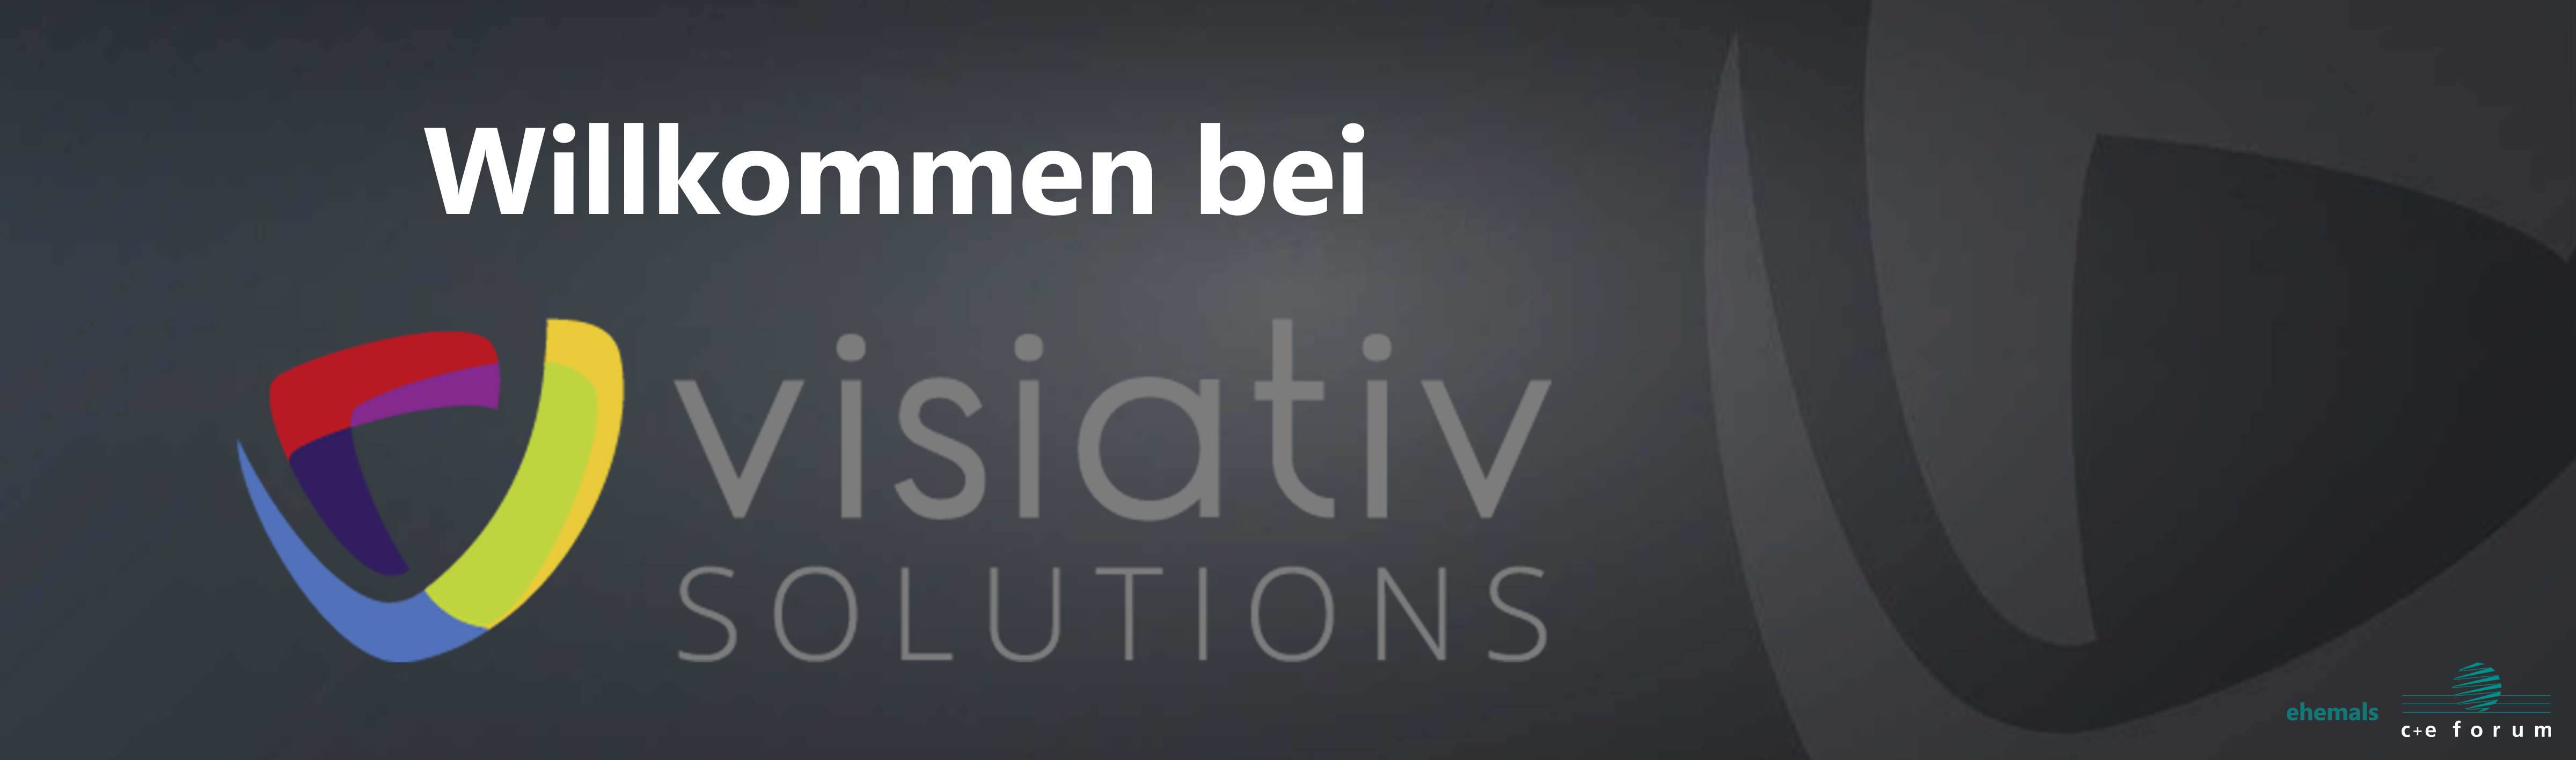 Welcome to Visiativ Solutions